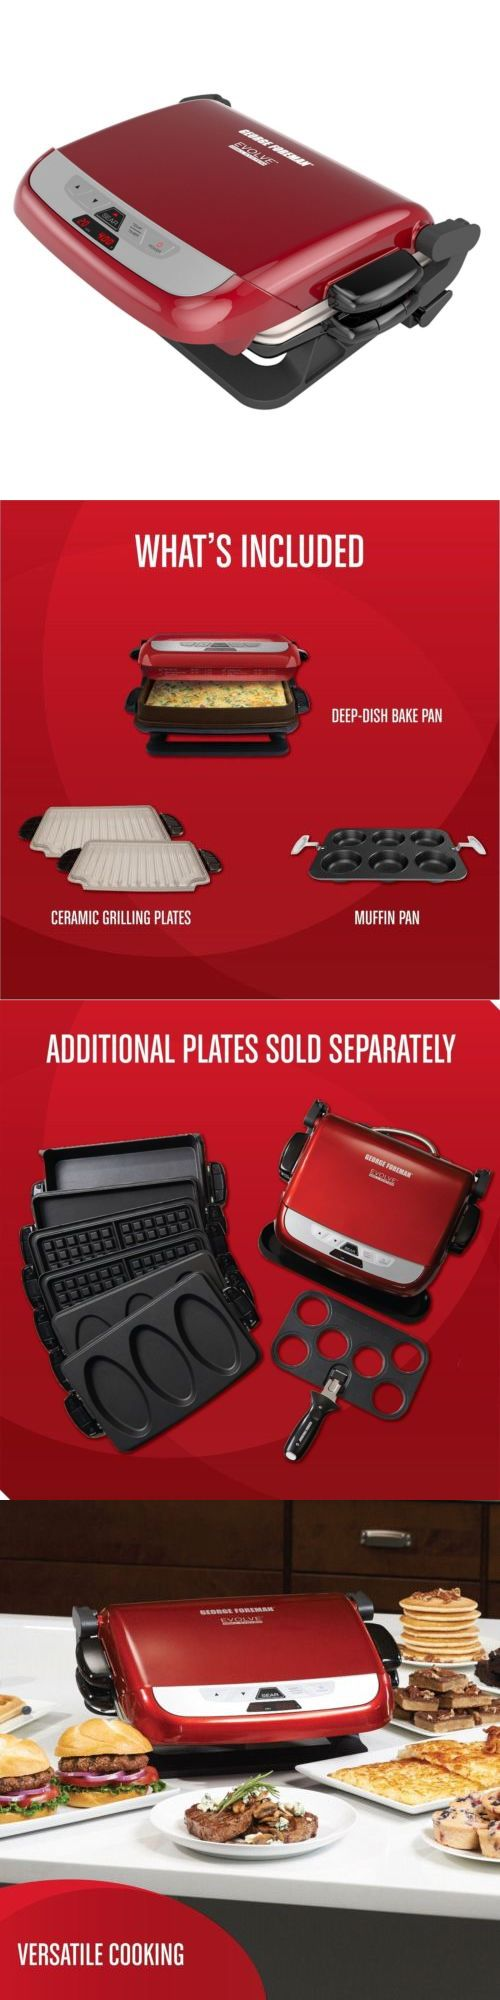 Grills and Griddles 20675: Red, George Foreman Grp4800r Multi-Plate Evolve Ceramic Grill -> BUY IT NOW ONLY: $111.34 on eBay!